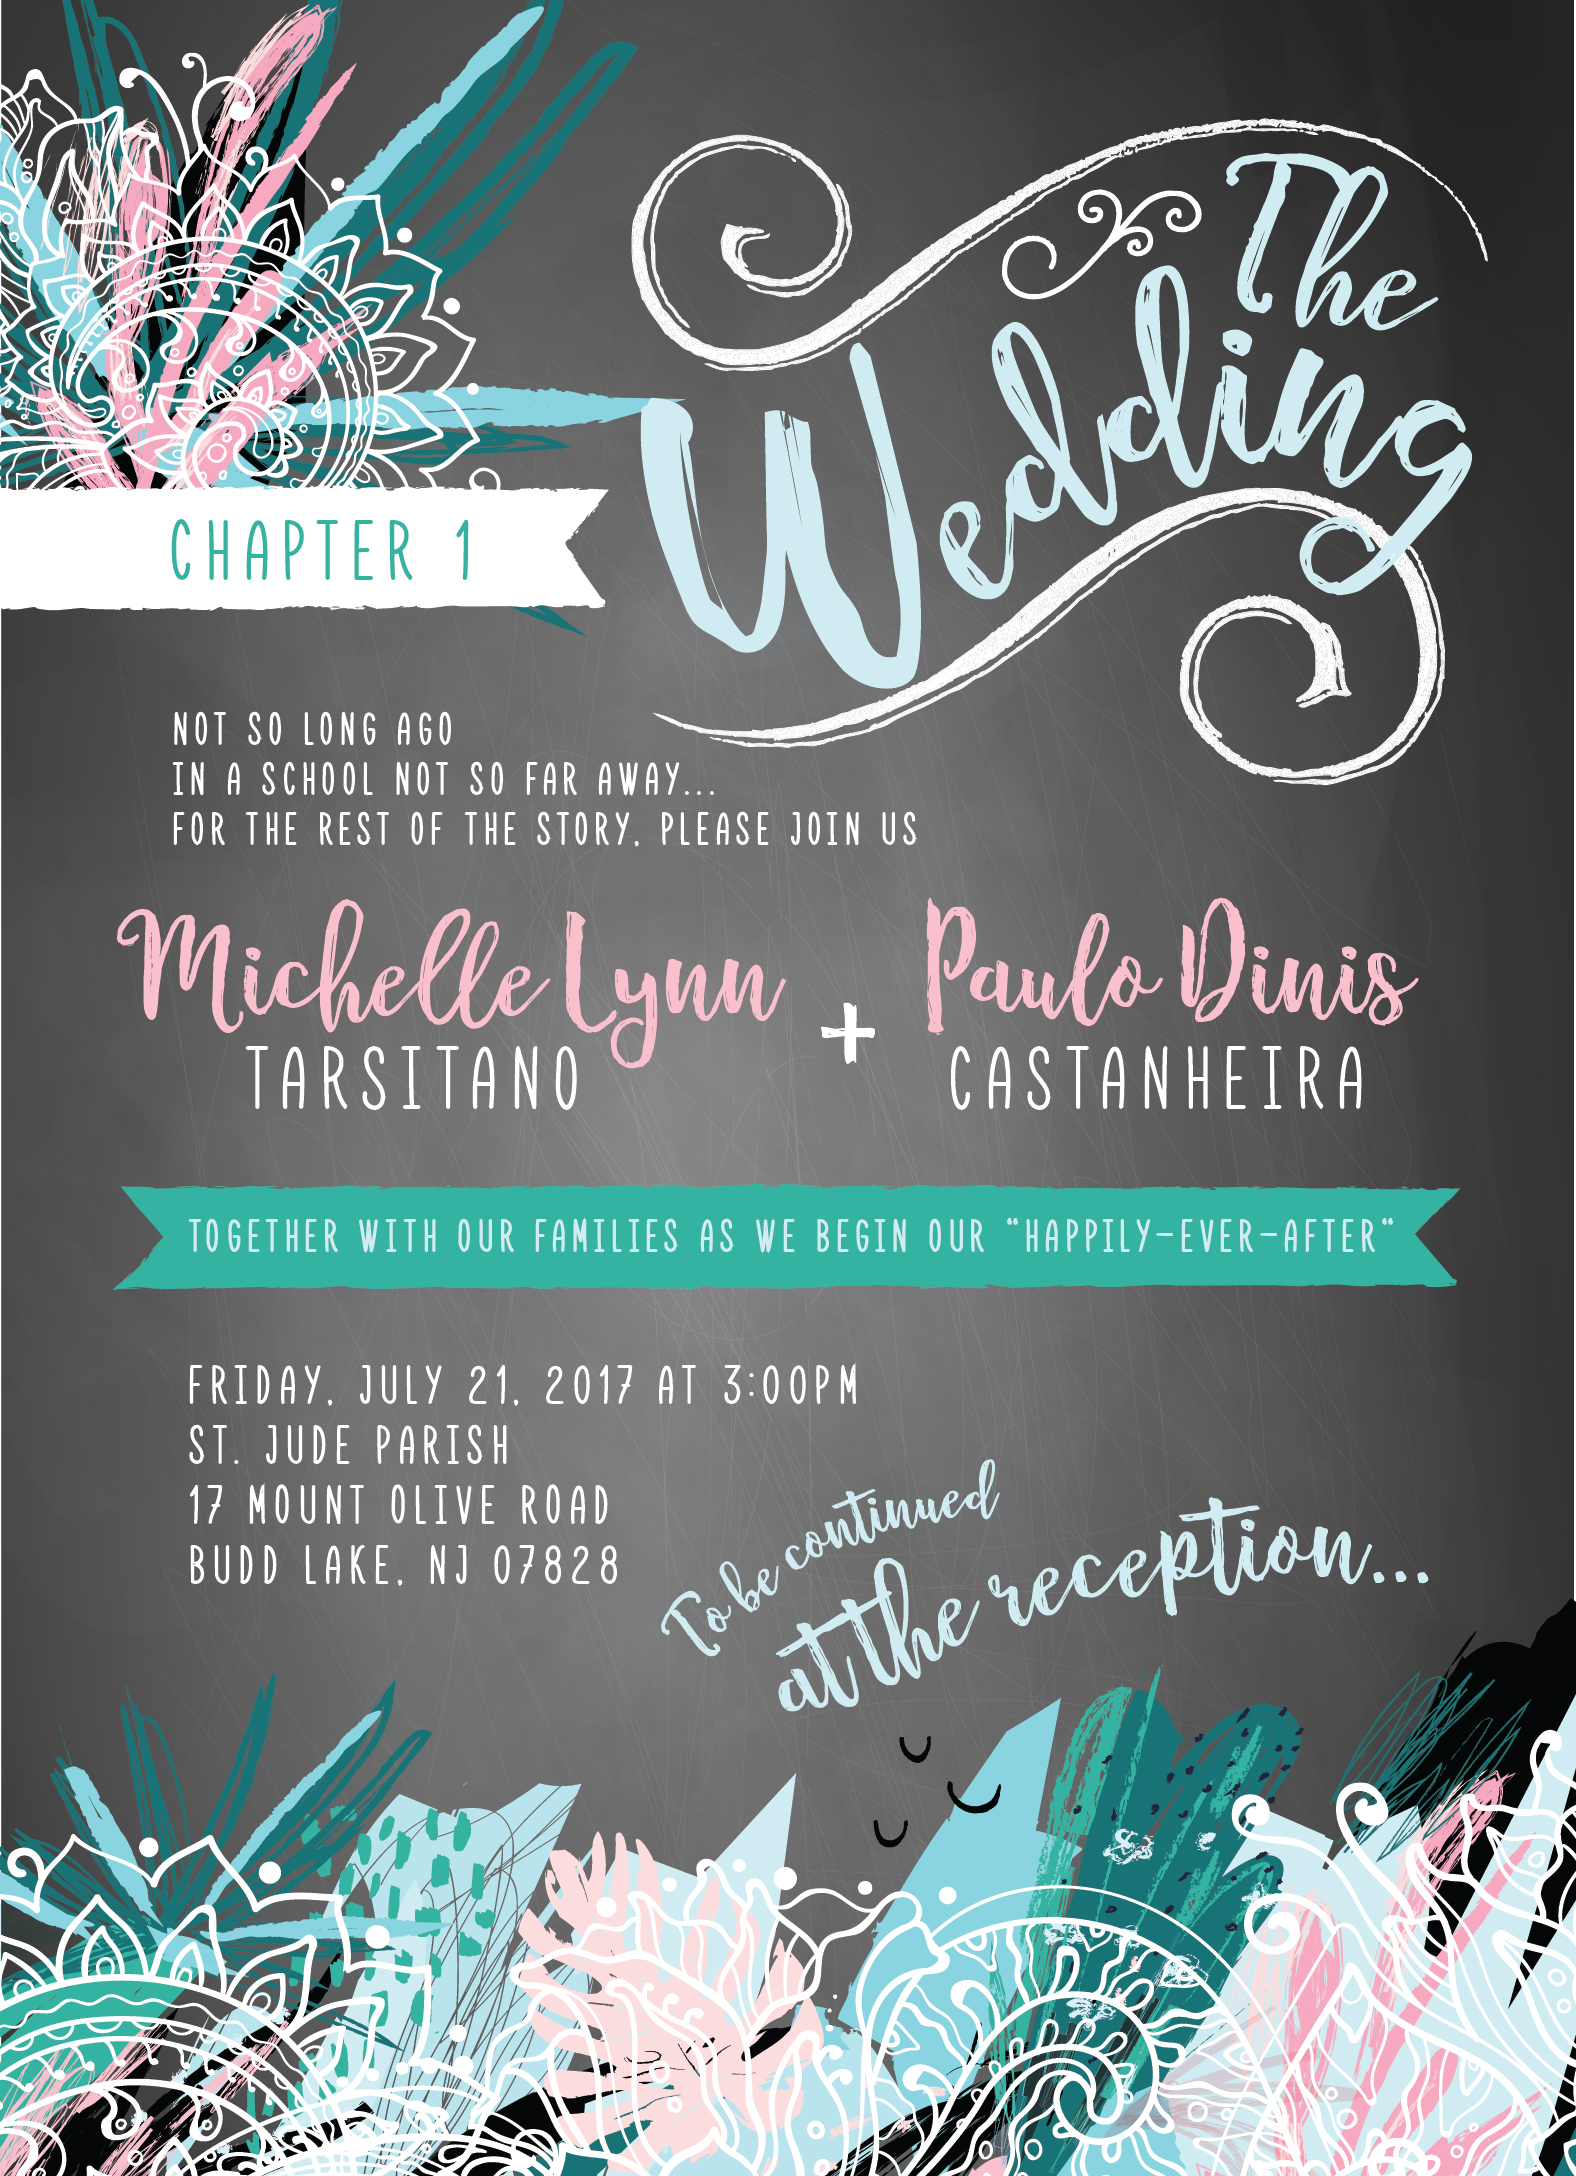 Castanheira Wedding